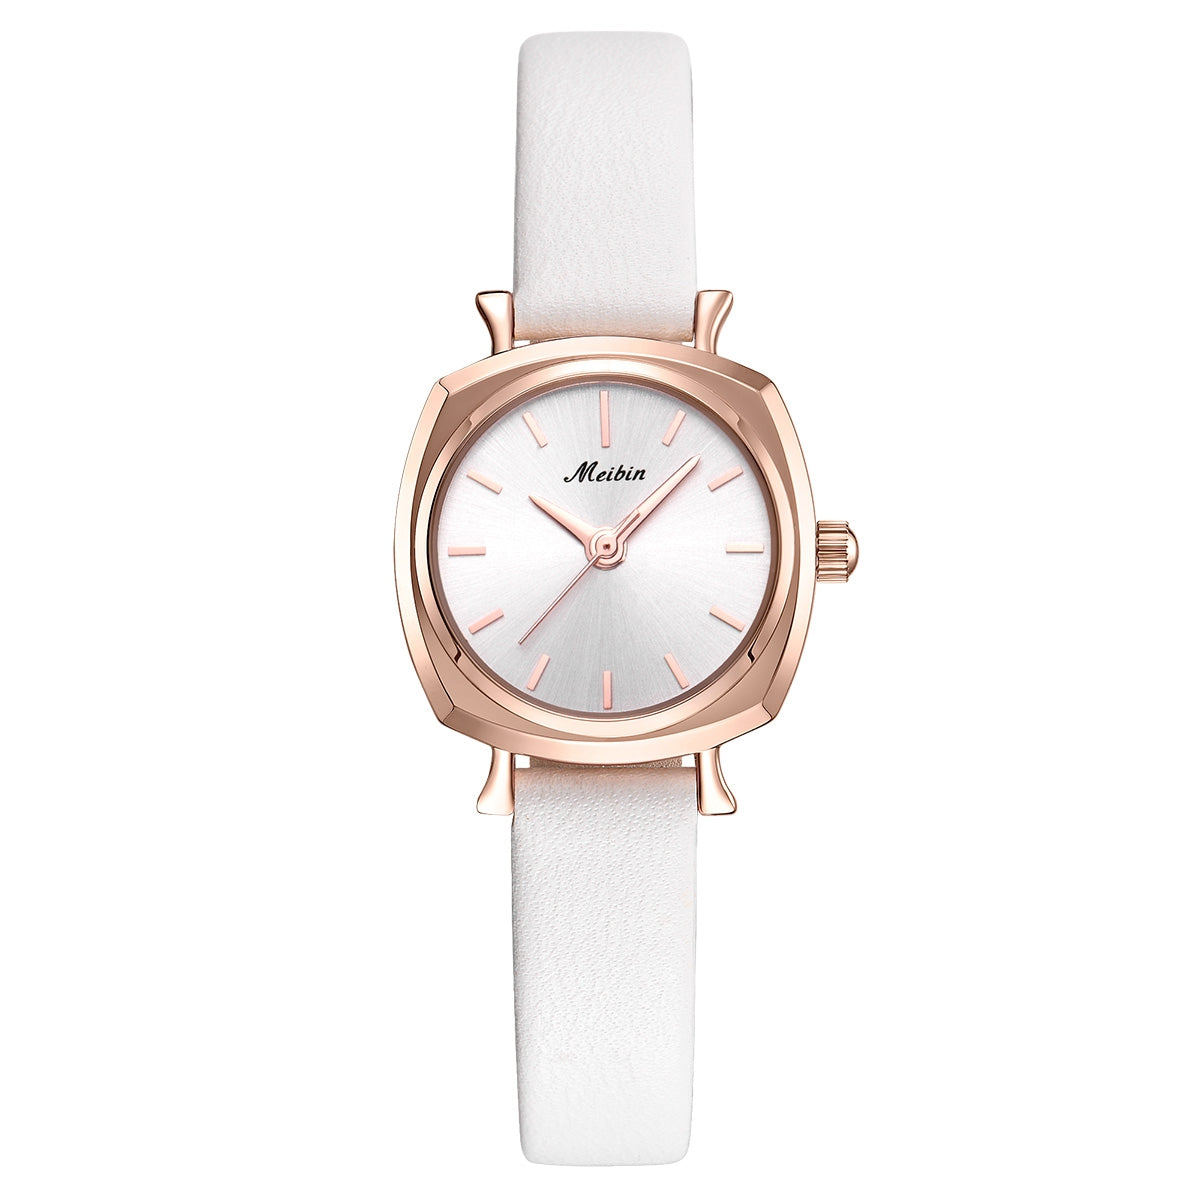 MEIBIN 1128 Ladies Waterproof Watch Compact Fashion Trend Belt Simple